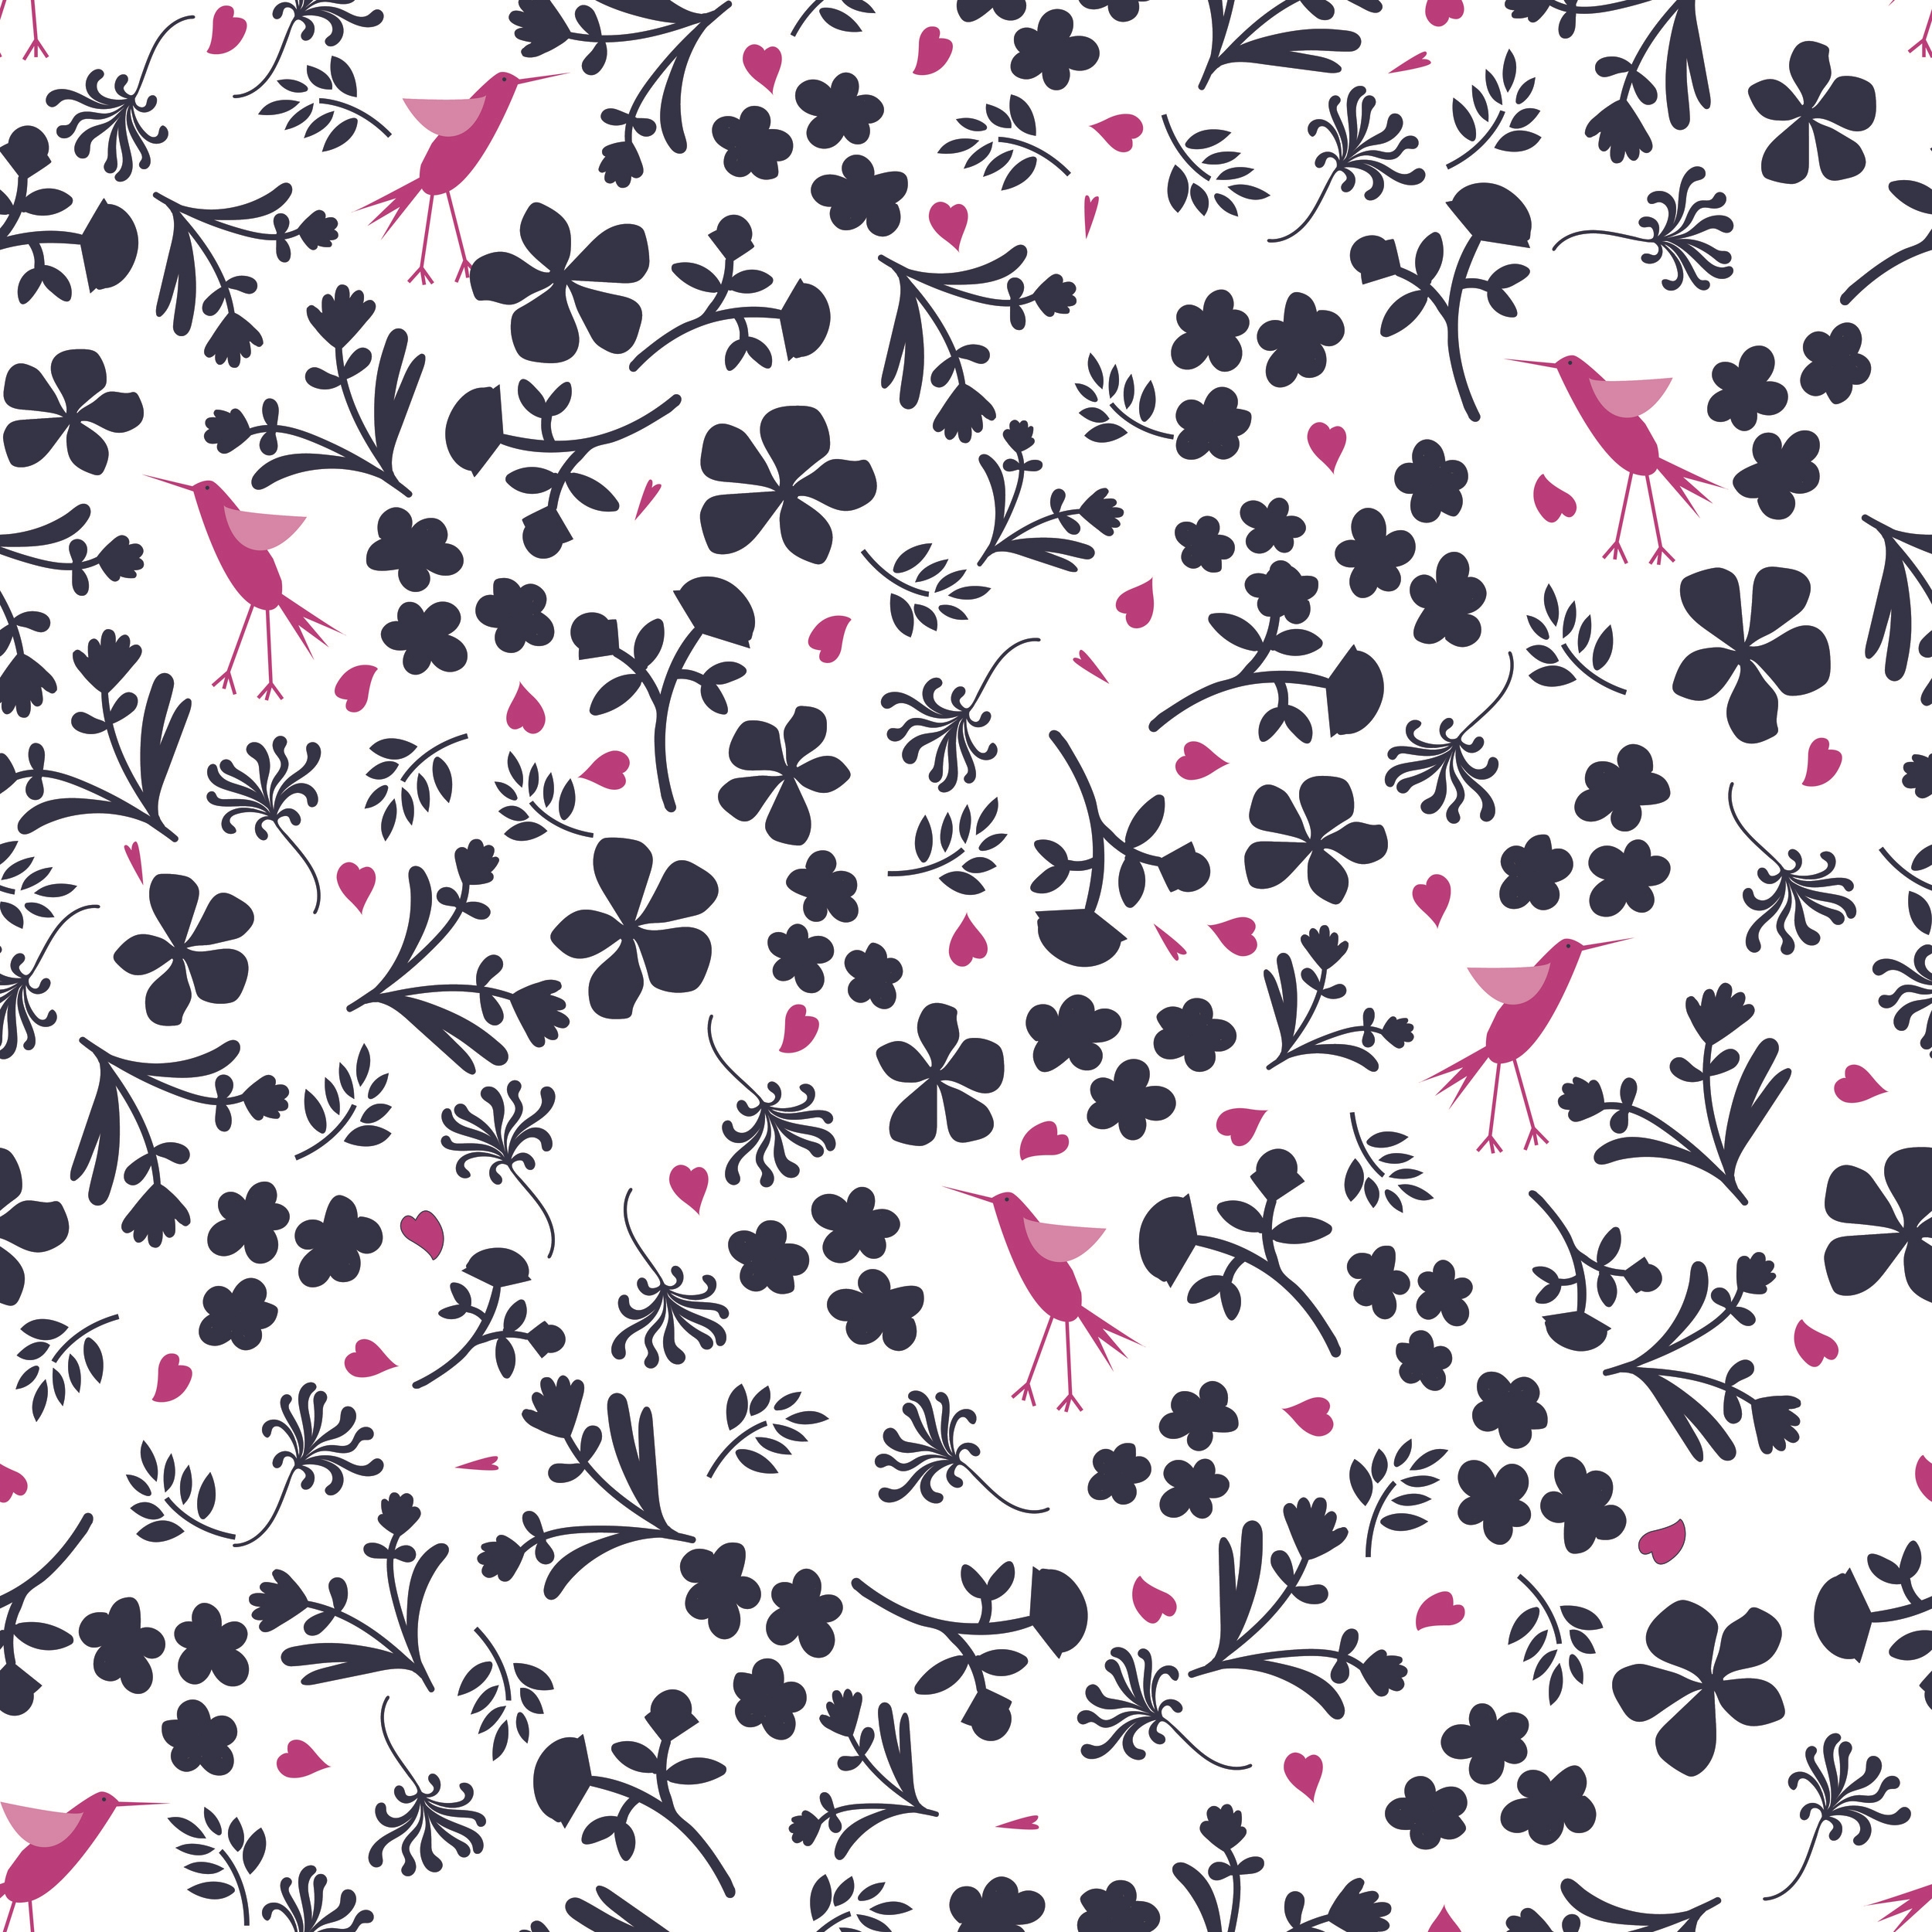 119 lilly and lolly sheet FA-02.jpg